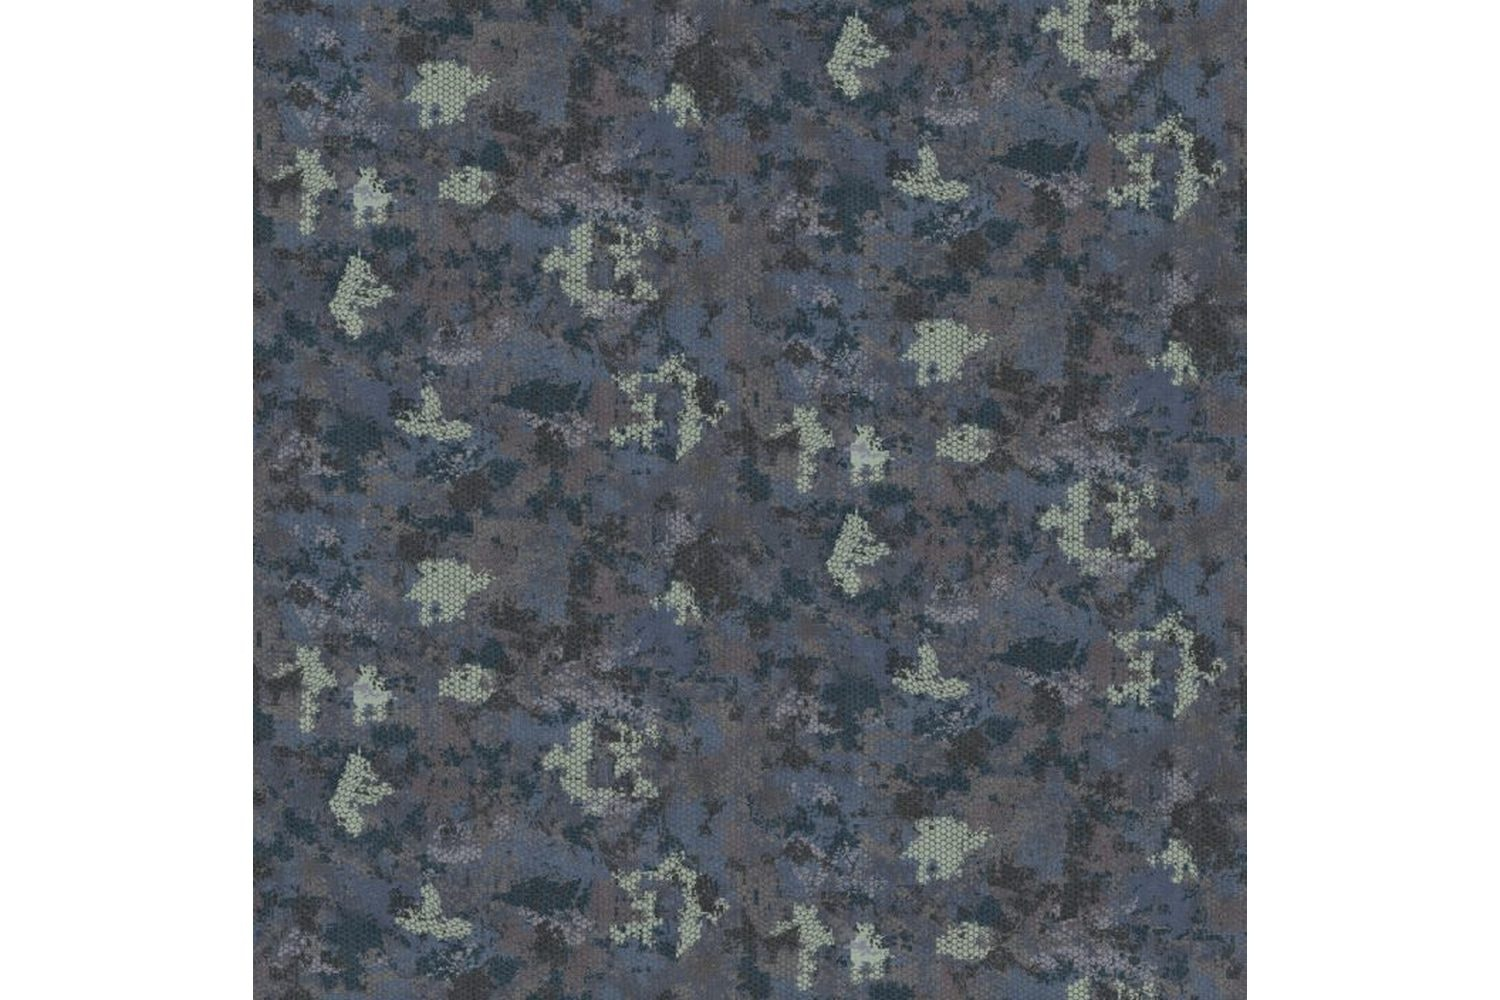 Camo Grey Carpet by Moooi Works for Moooi Carpets